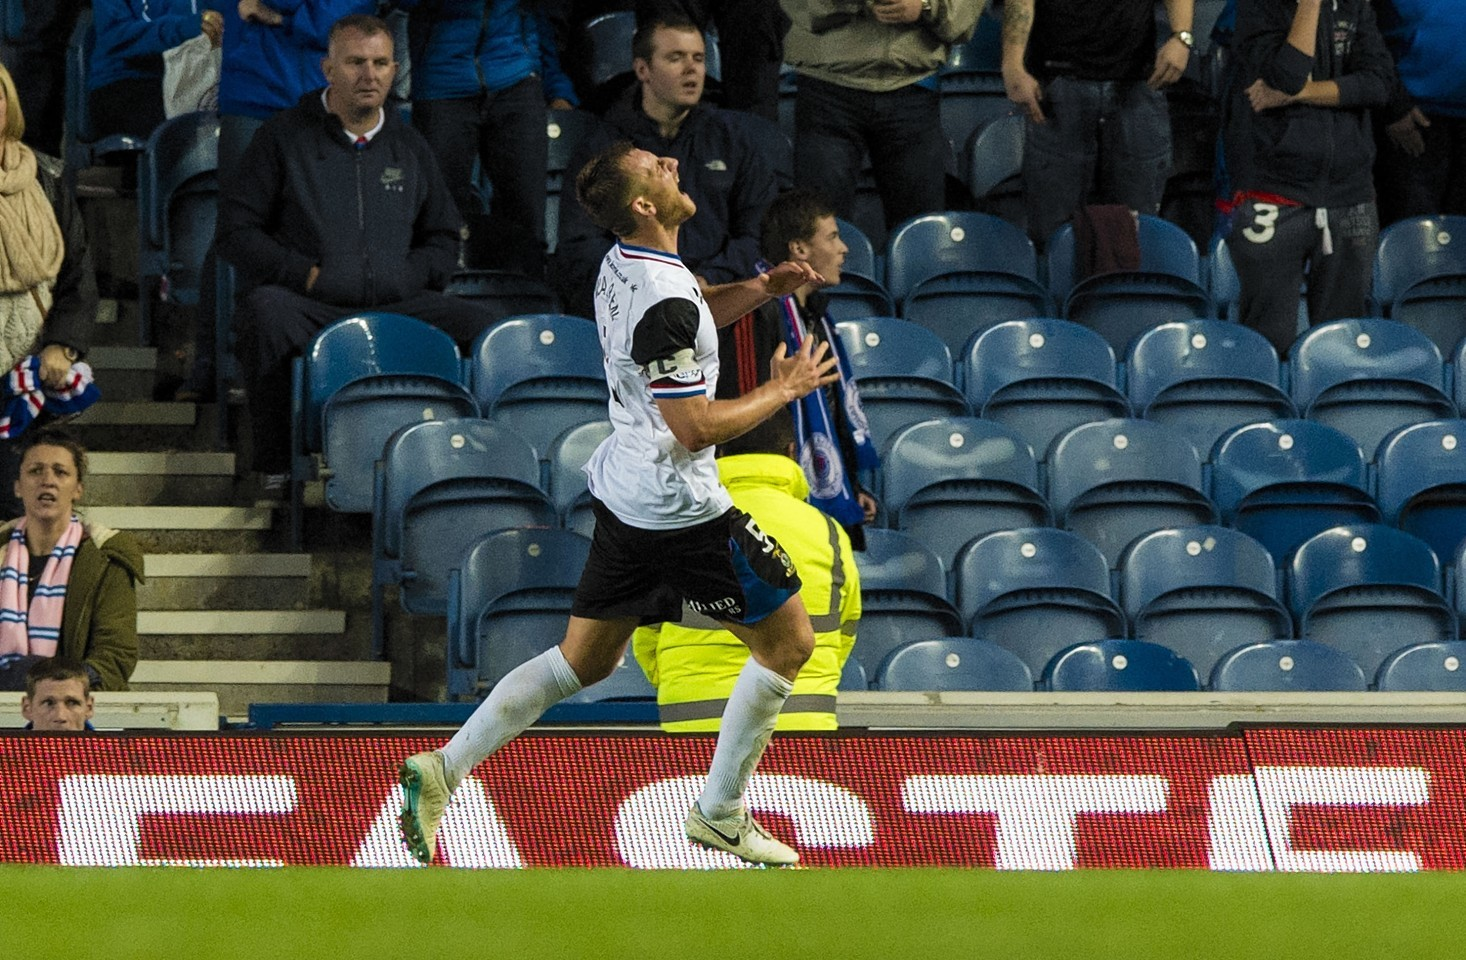 Gary Warren was left frustrated after his late goal was disallowed for offside